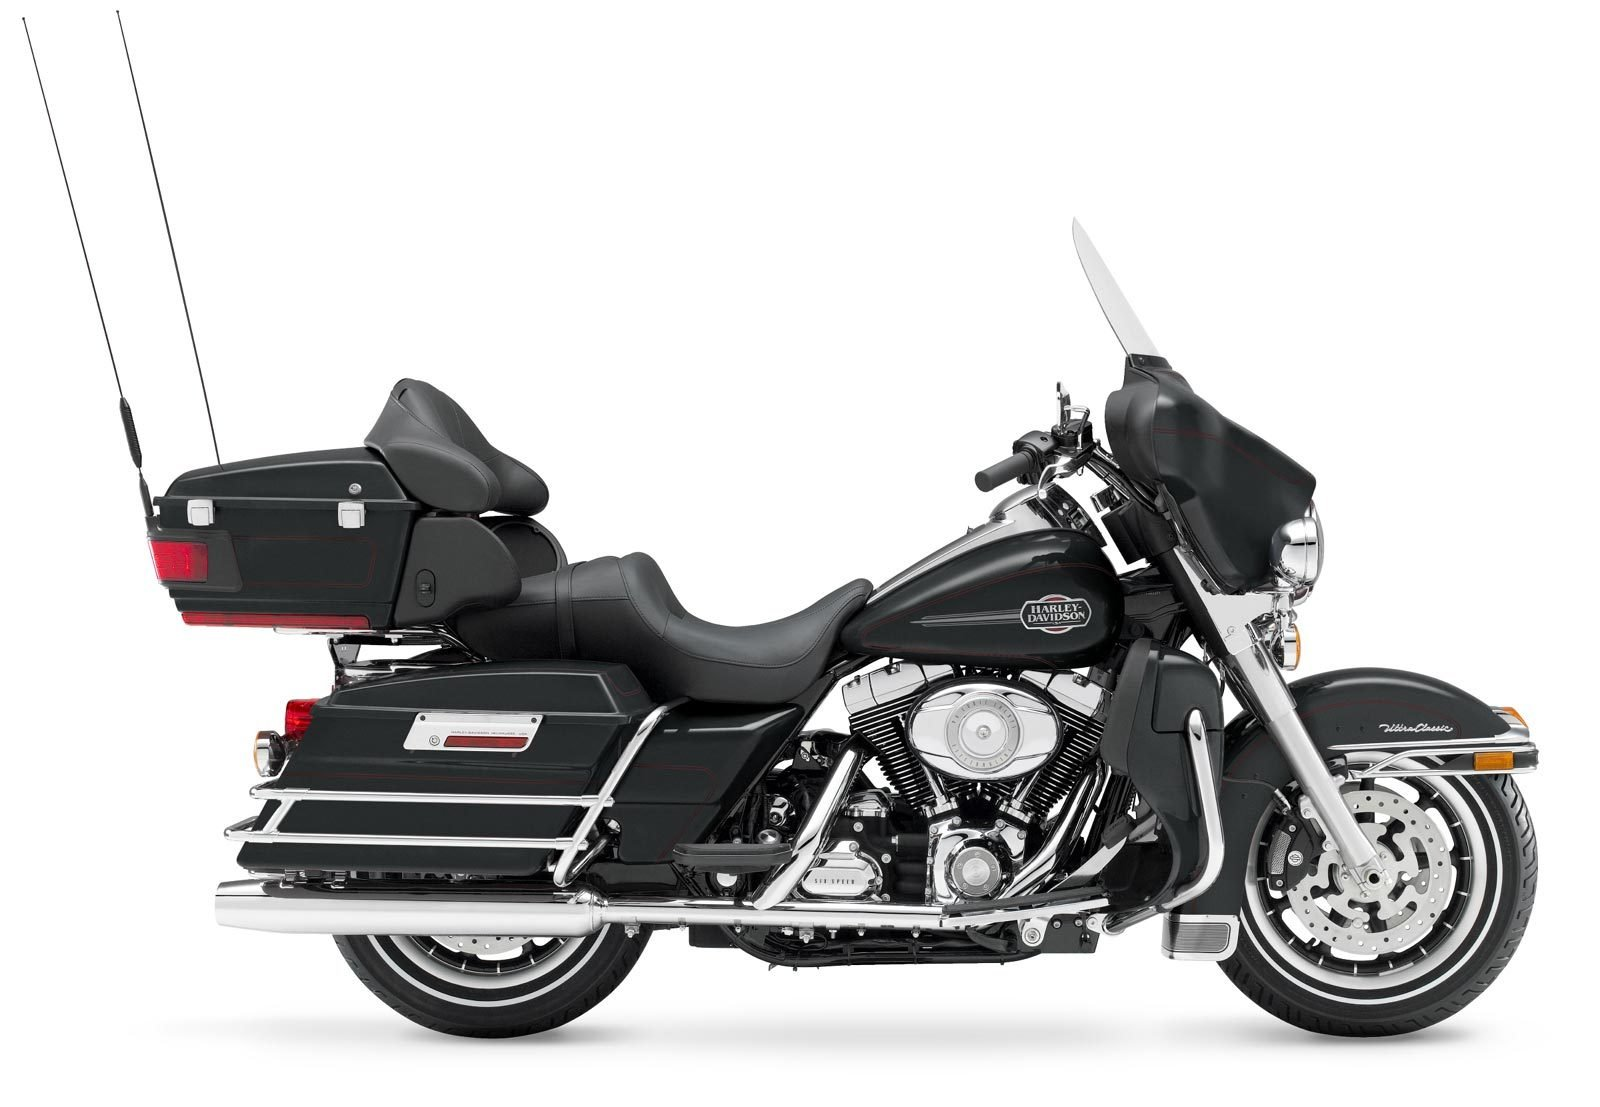 2012 harley davidson flhtcu ultra classic electra glide picture 433360 motorcycle review. Black Bedroom Furniture Sets. Home Design Ideas